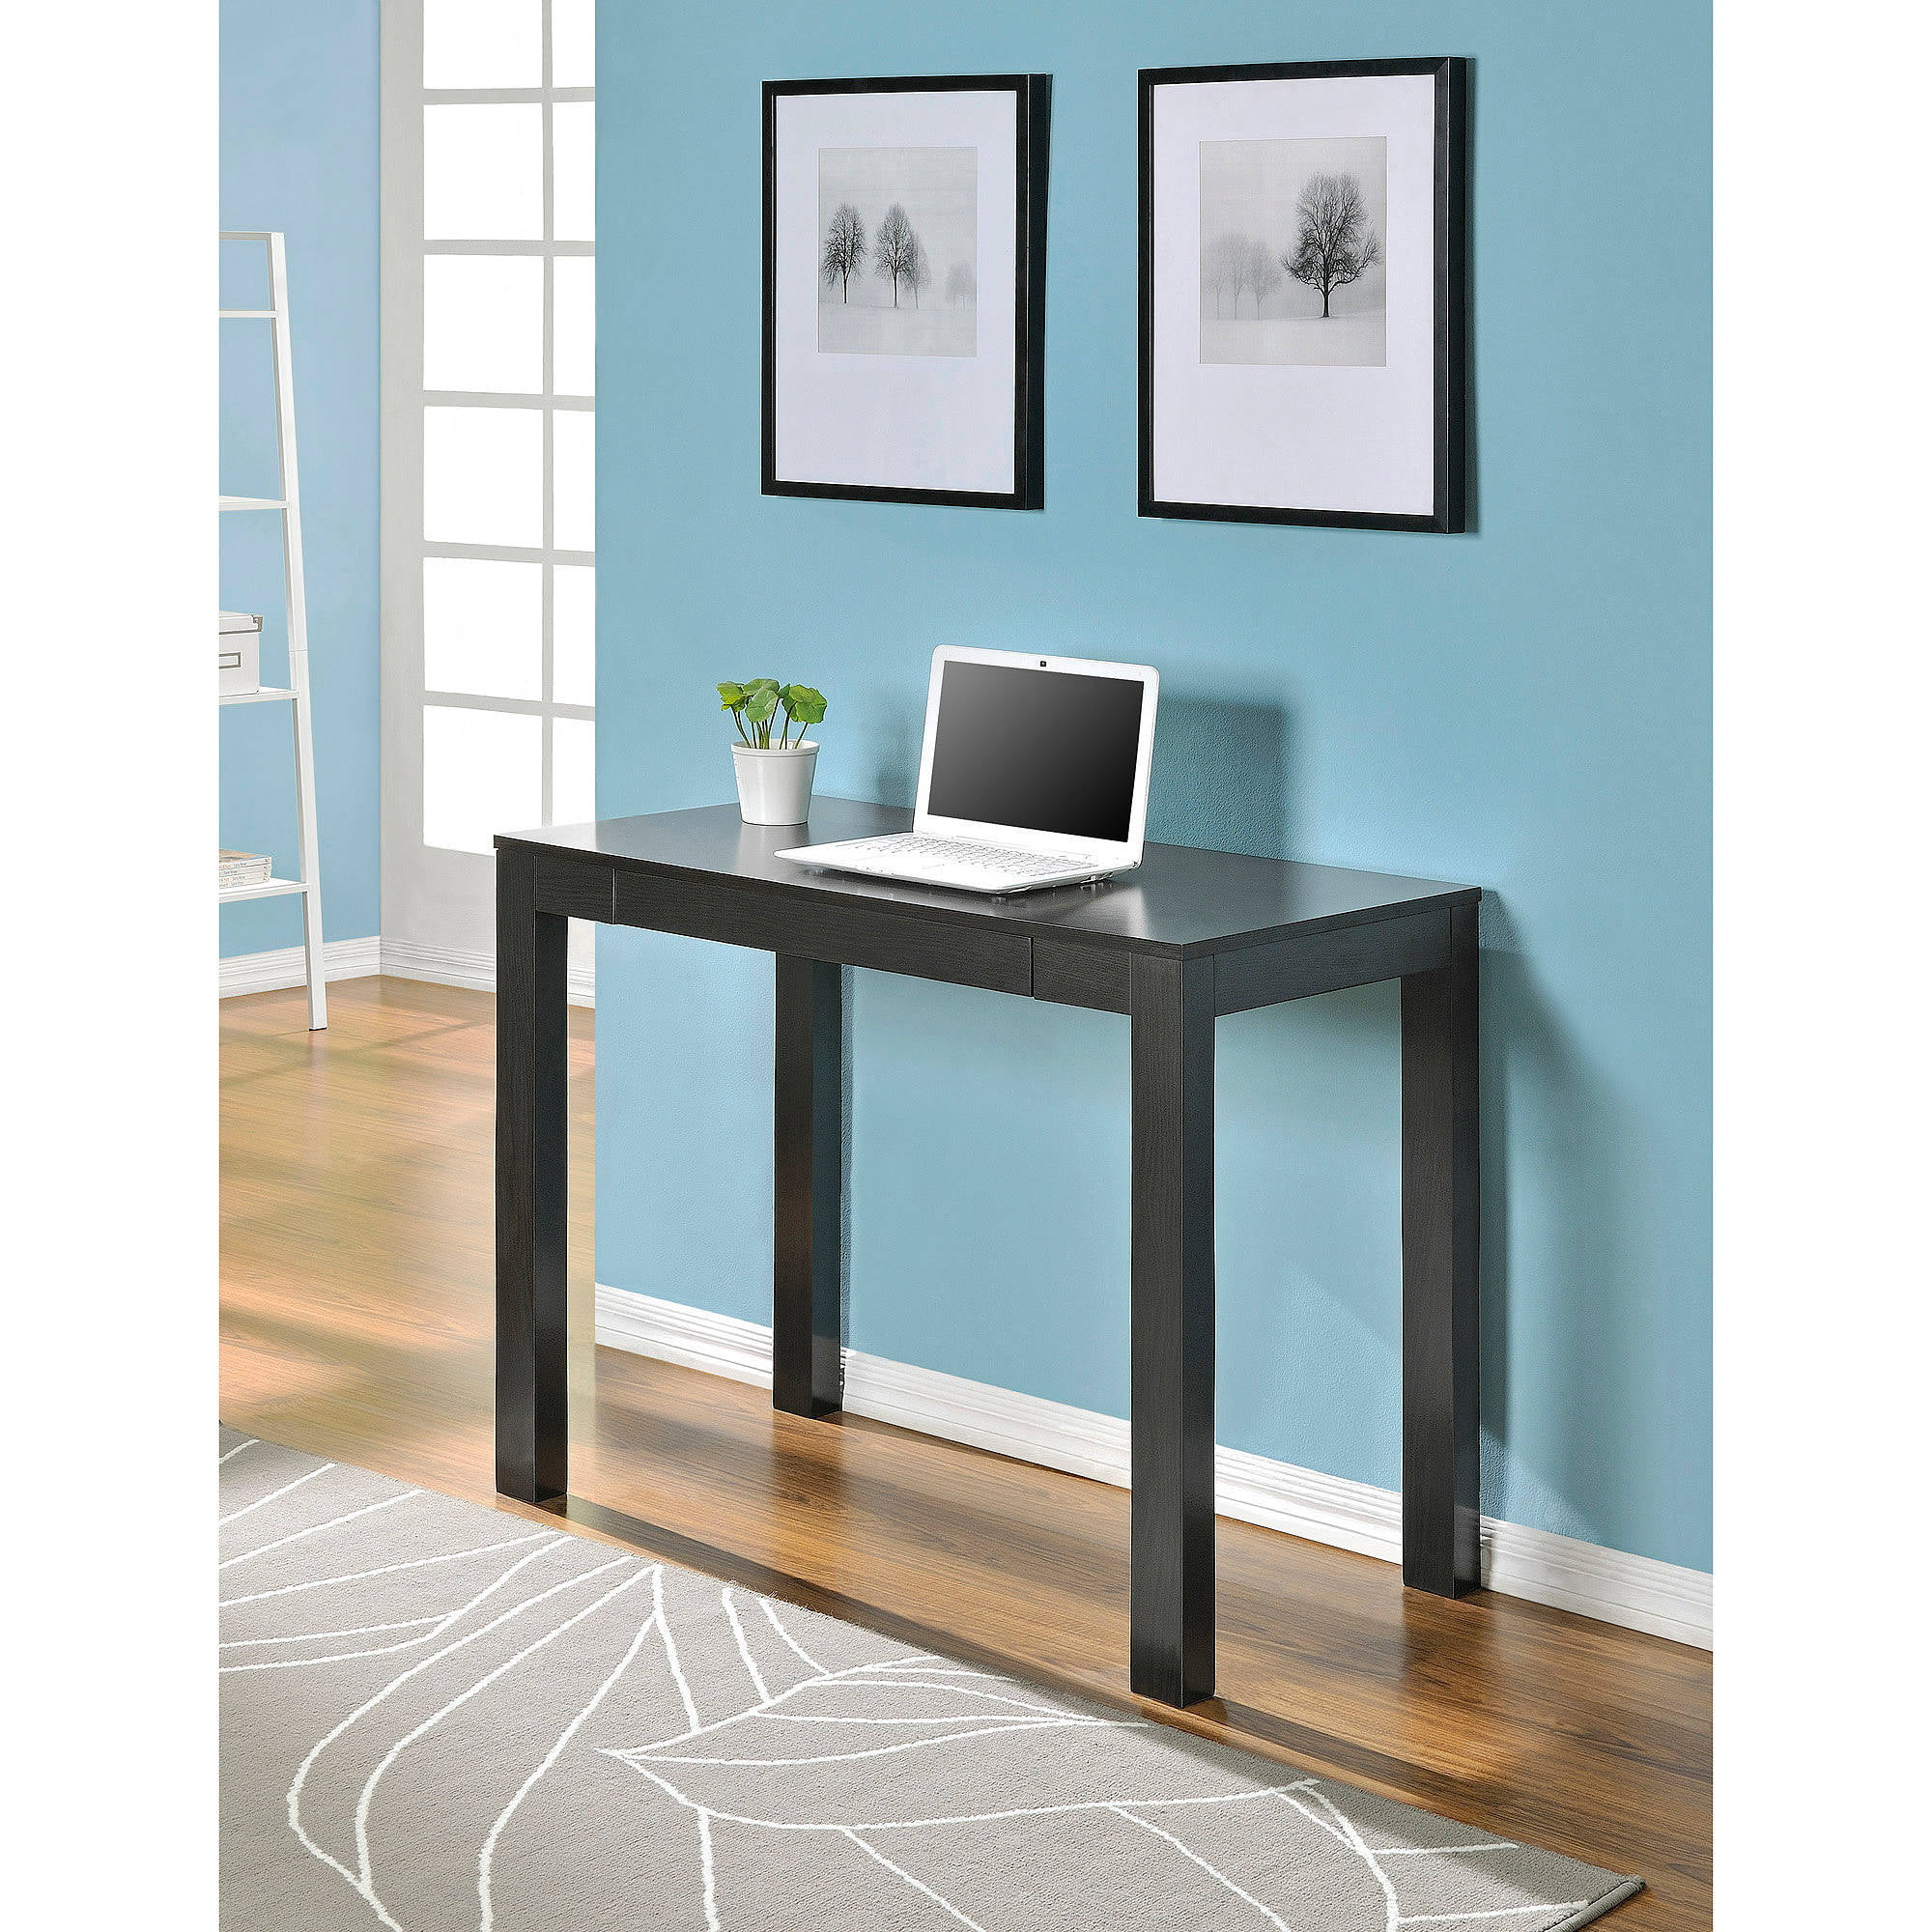 Mainstays Parsons Desk With Drawer, Multiple Colors   Walmart.com